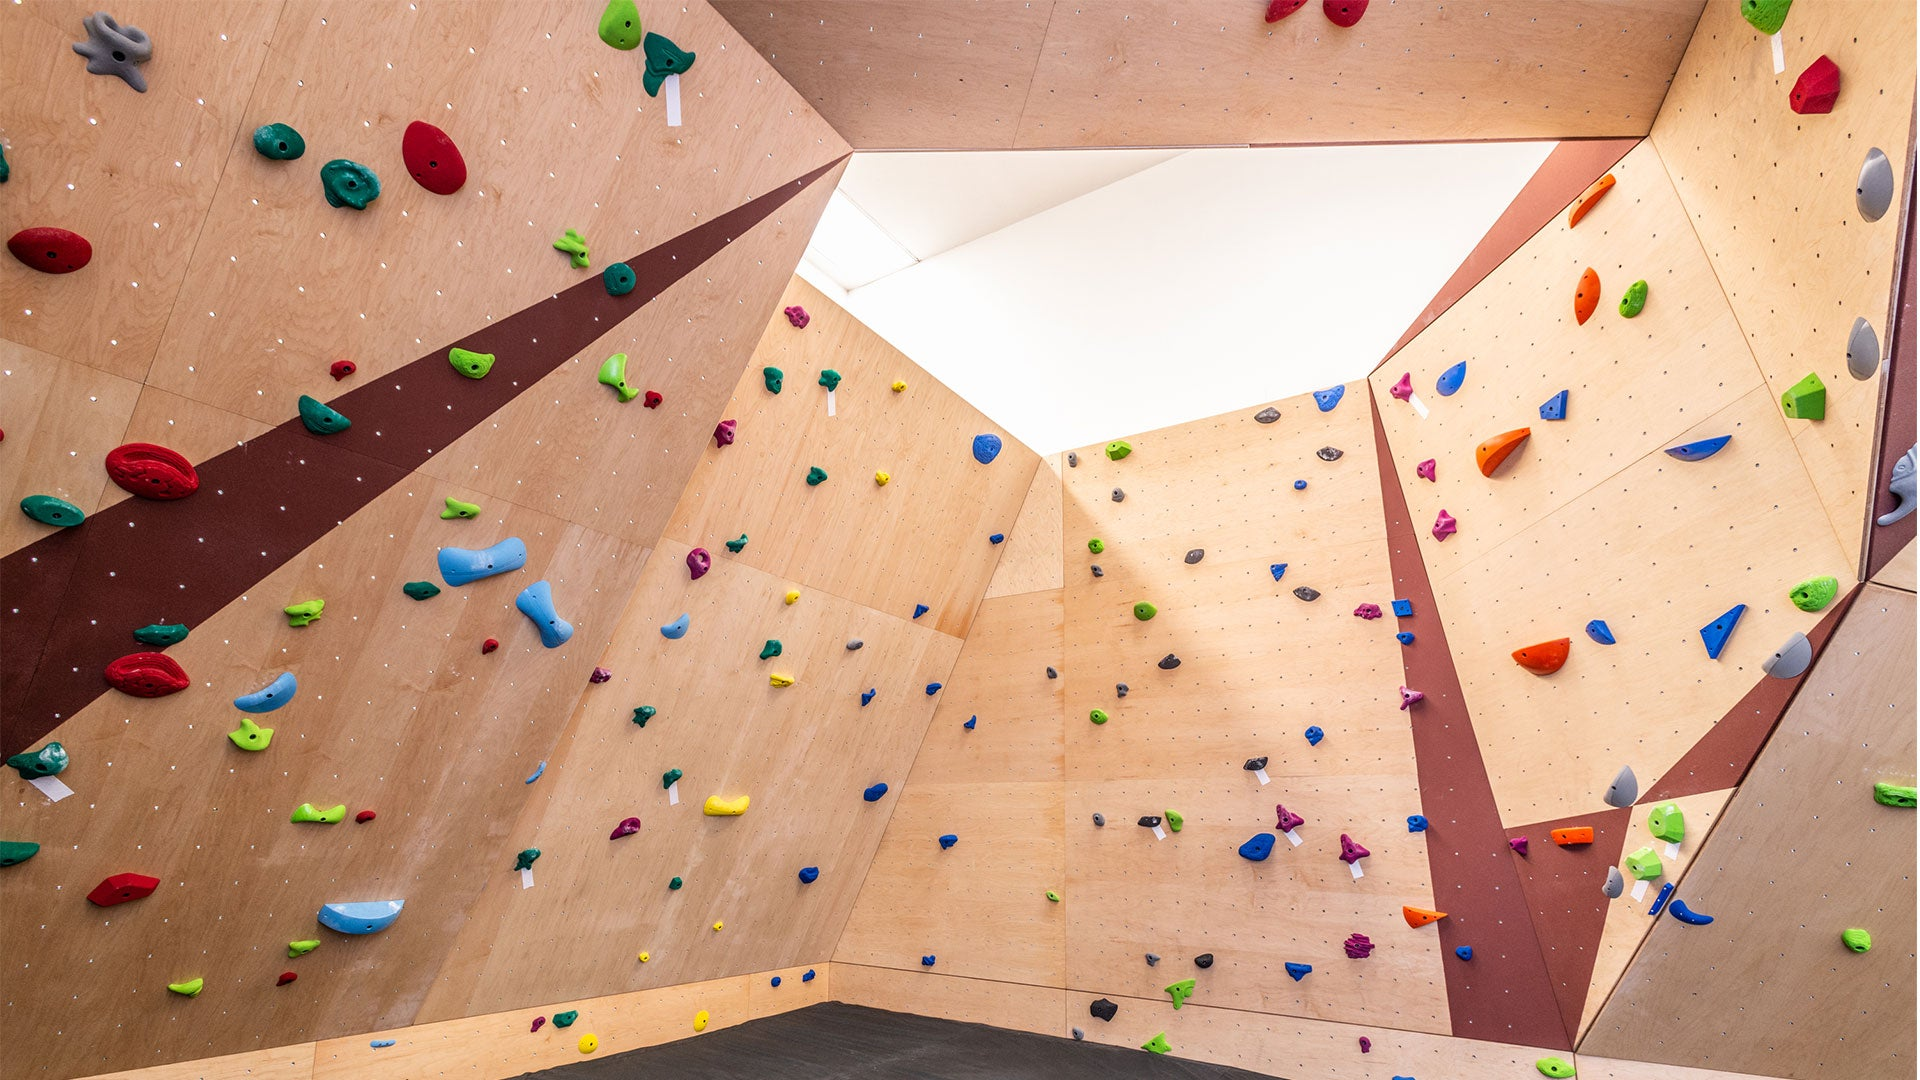 Climbing Wall Backgrounds For Your Next Zoom Meeting Or Desktop Everlast Climbing